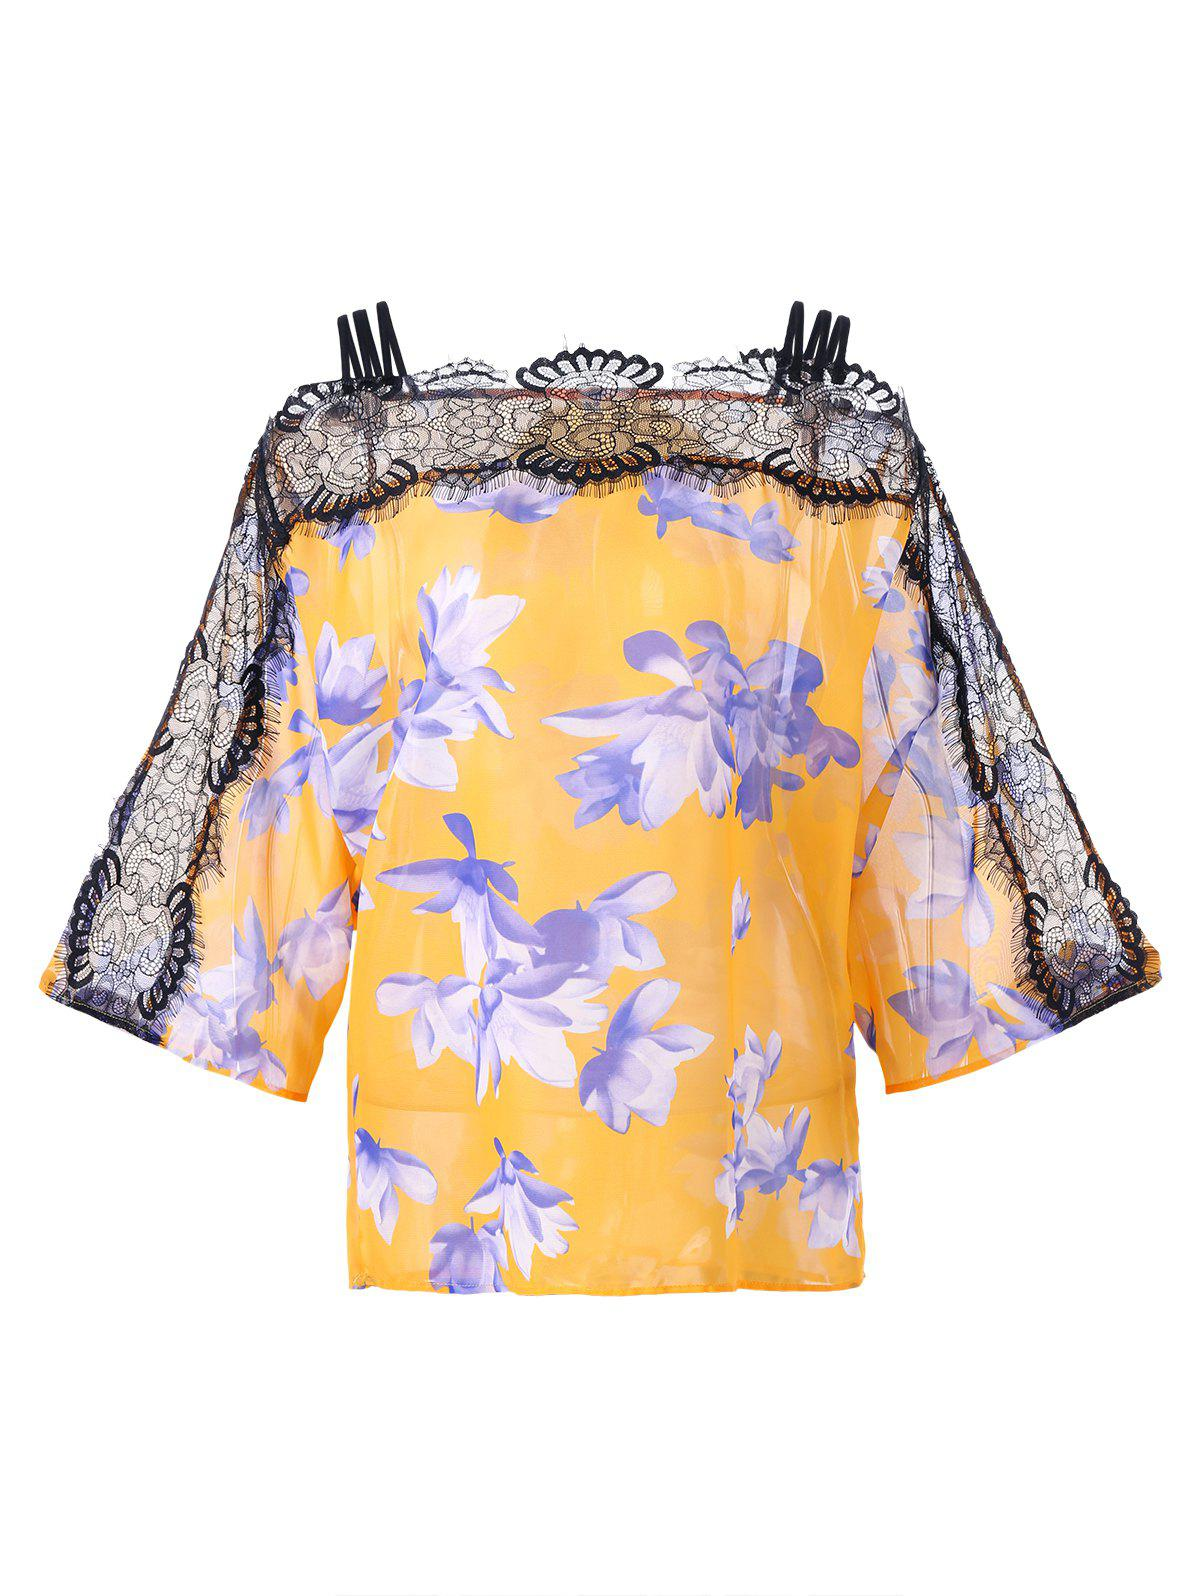 Lace Trim Floral Cold Shoulder Blouse - YOLK YELLOW M